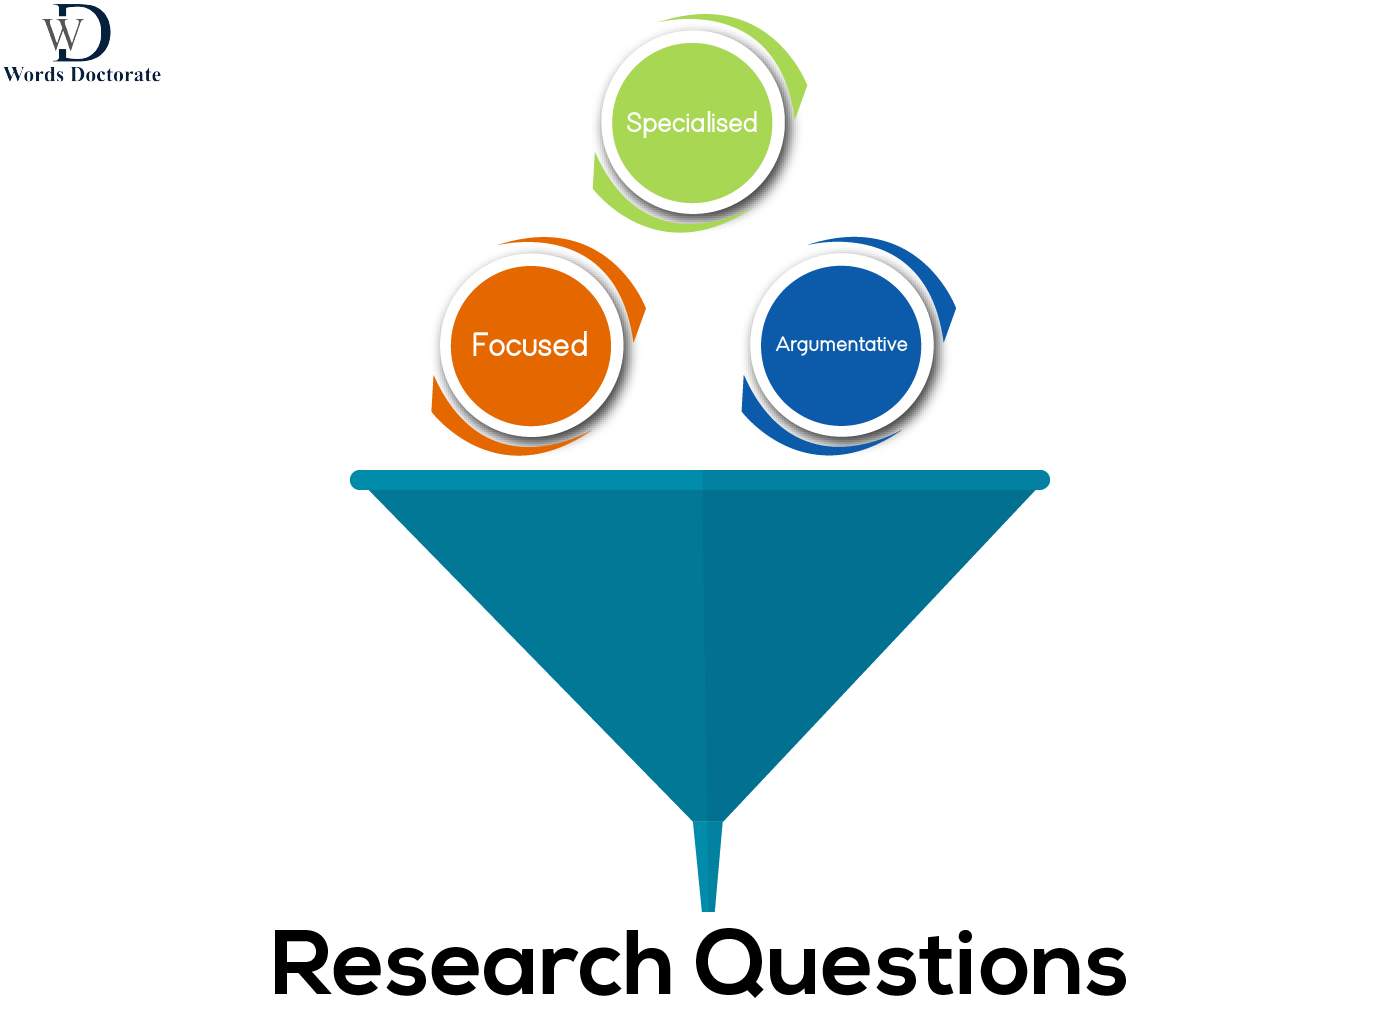 Features of research questions - Words Doctorate